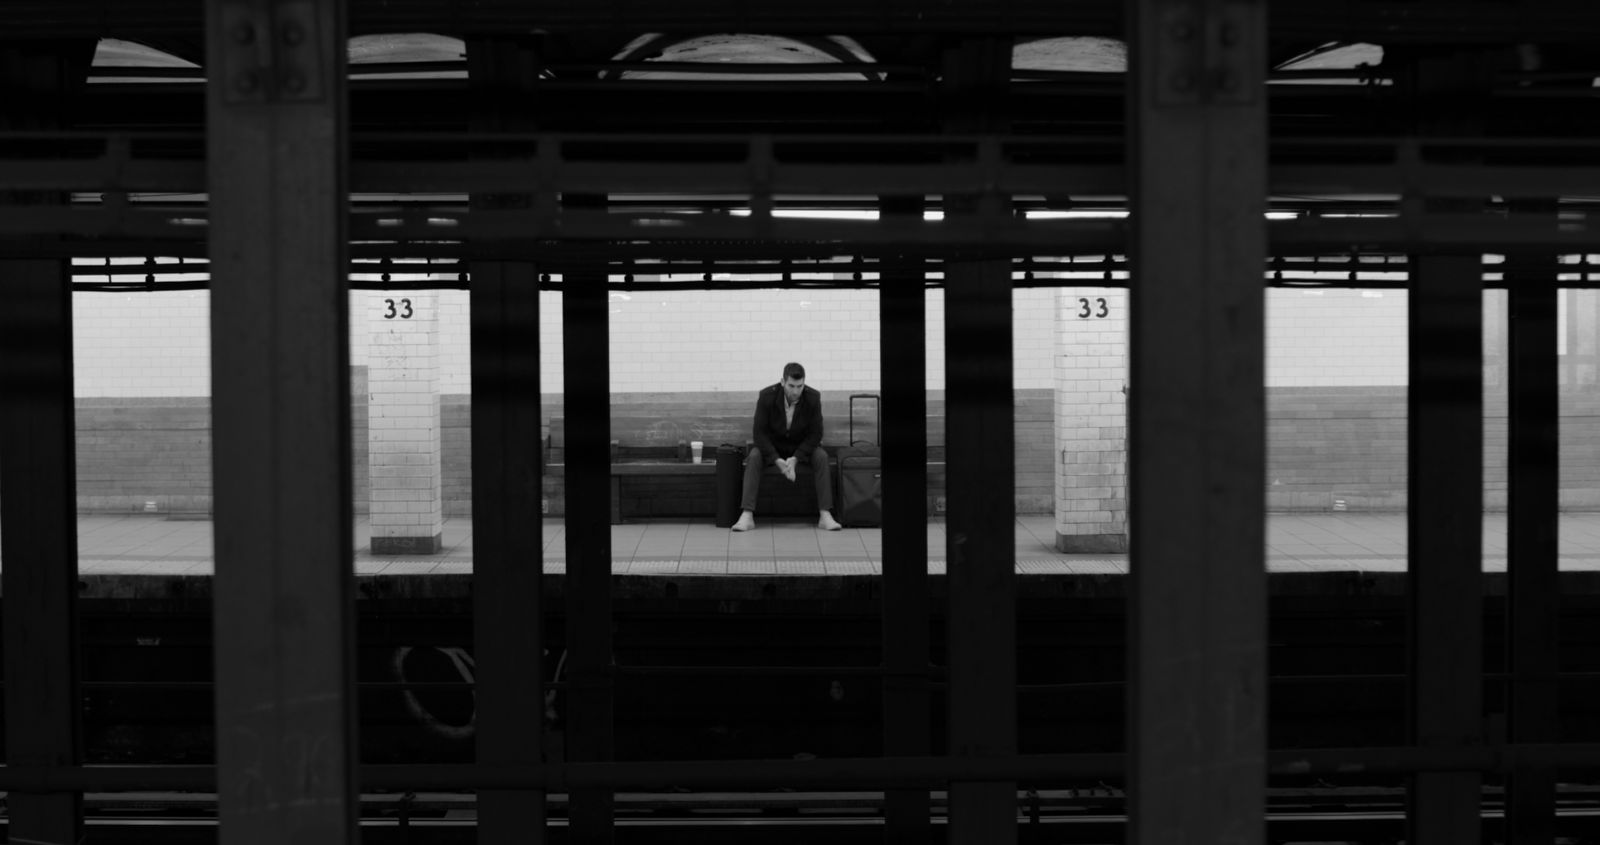 Man sitting waiting for a train in a subway